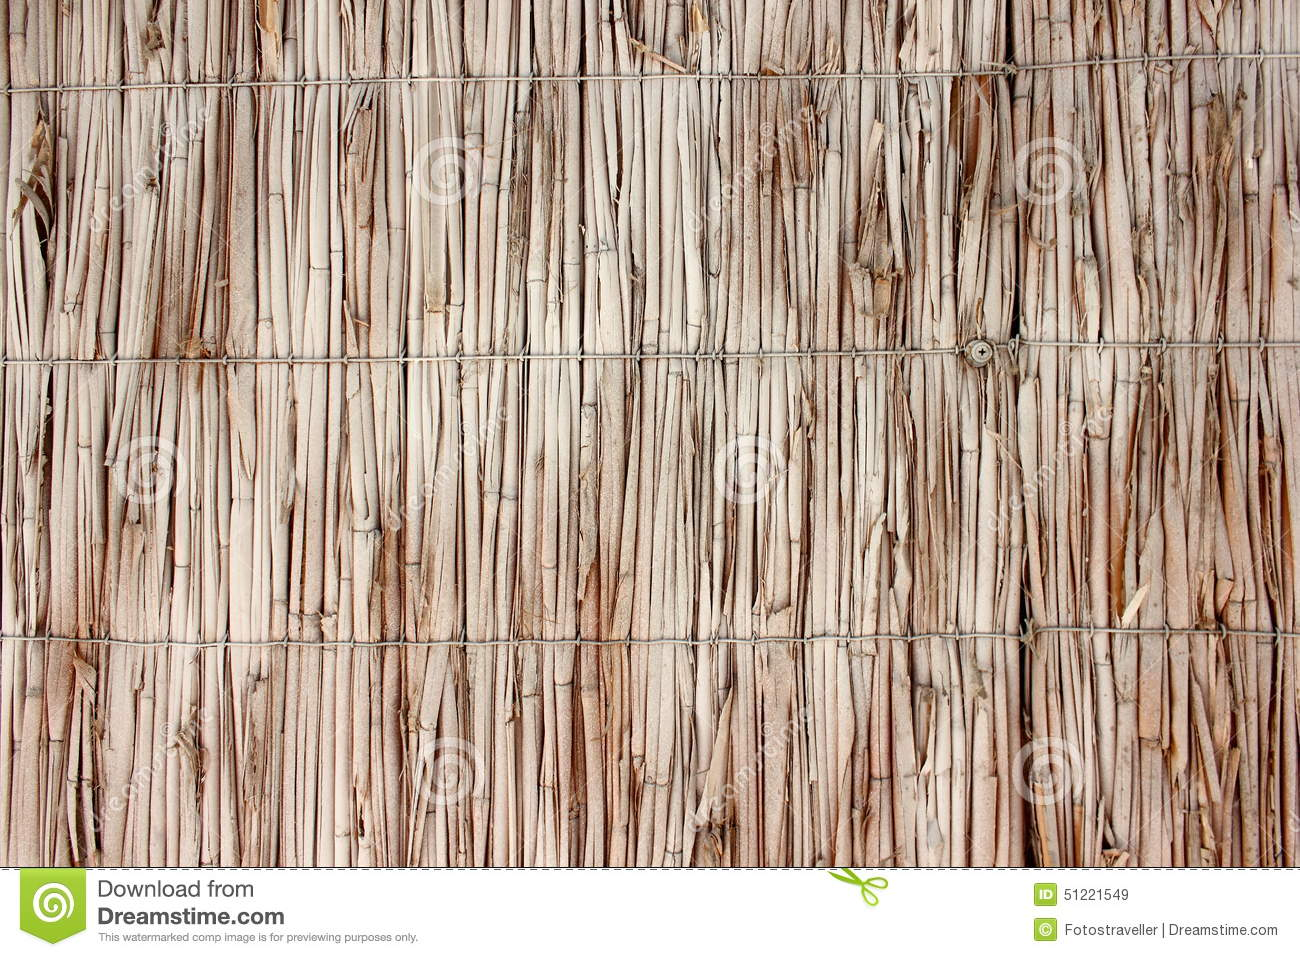 Wicker wall of reeds stock photo image 51221549 for Wicker reed